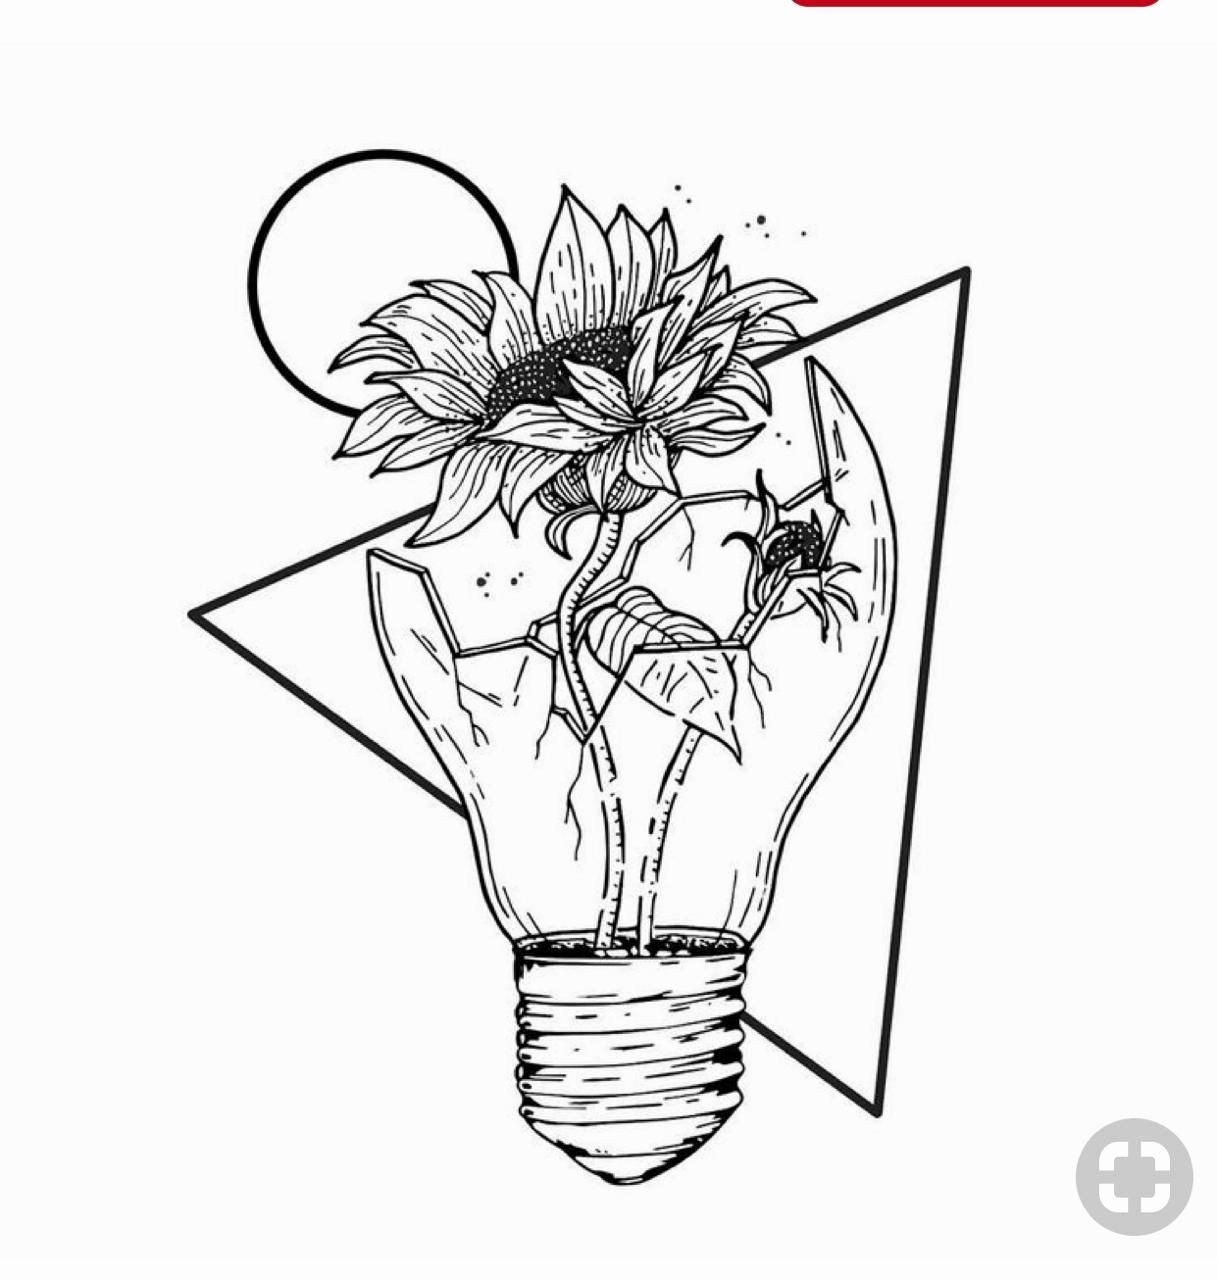 Coloring Outer Space Unique Aesthetic Space Tumblr Coloring Pages Kesho Wazo Easy Drawings Space In 2020 Sunflower Drawing Flower Drawing Easy Flower Drawings